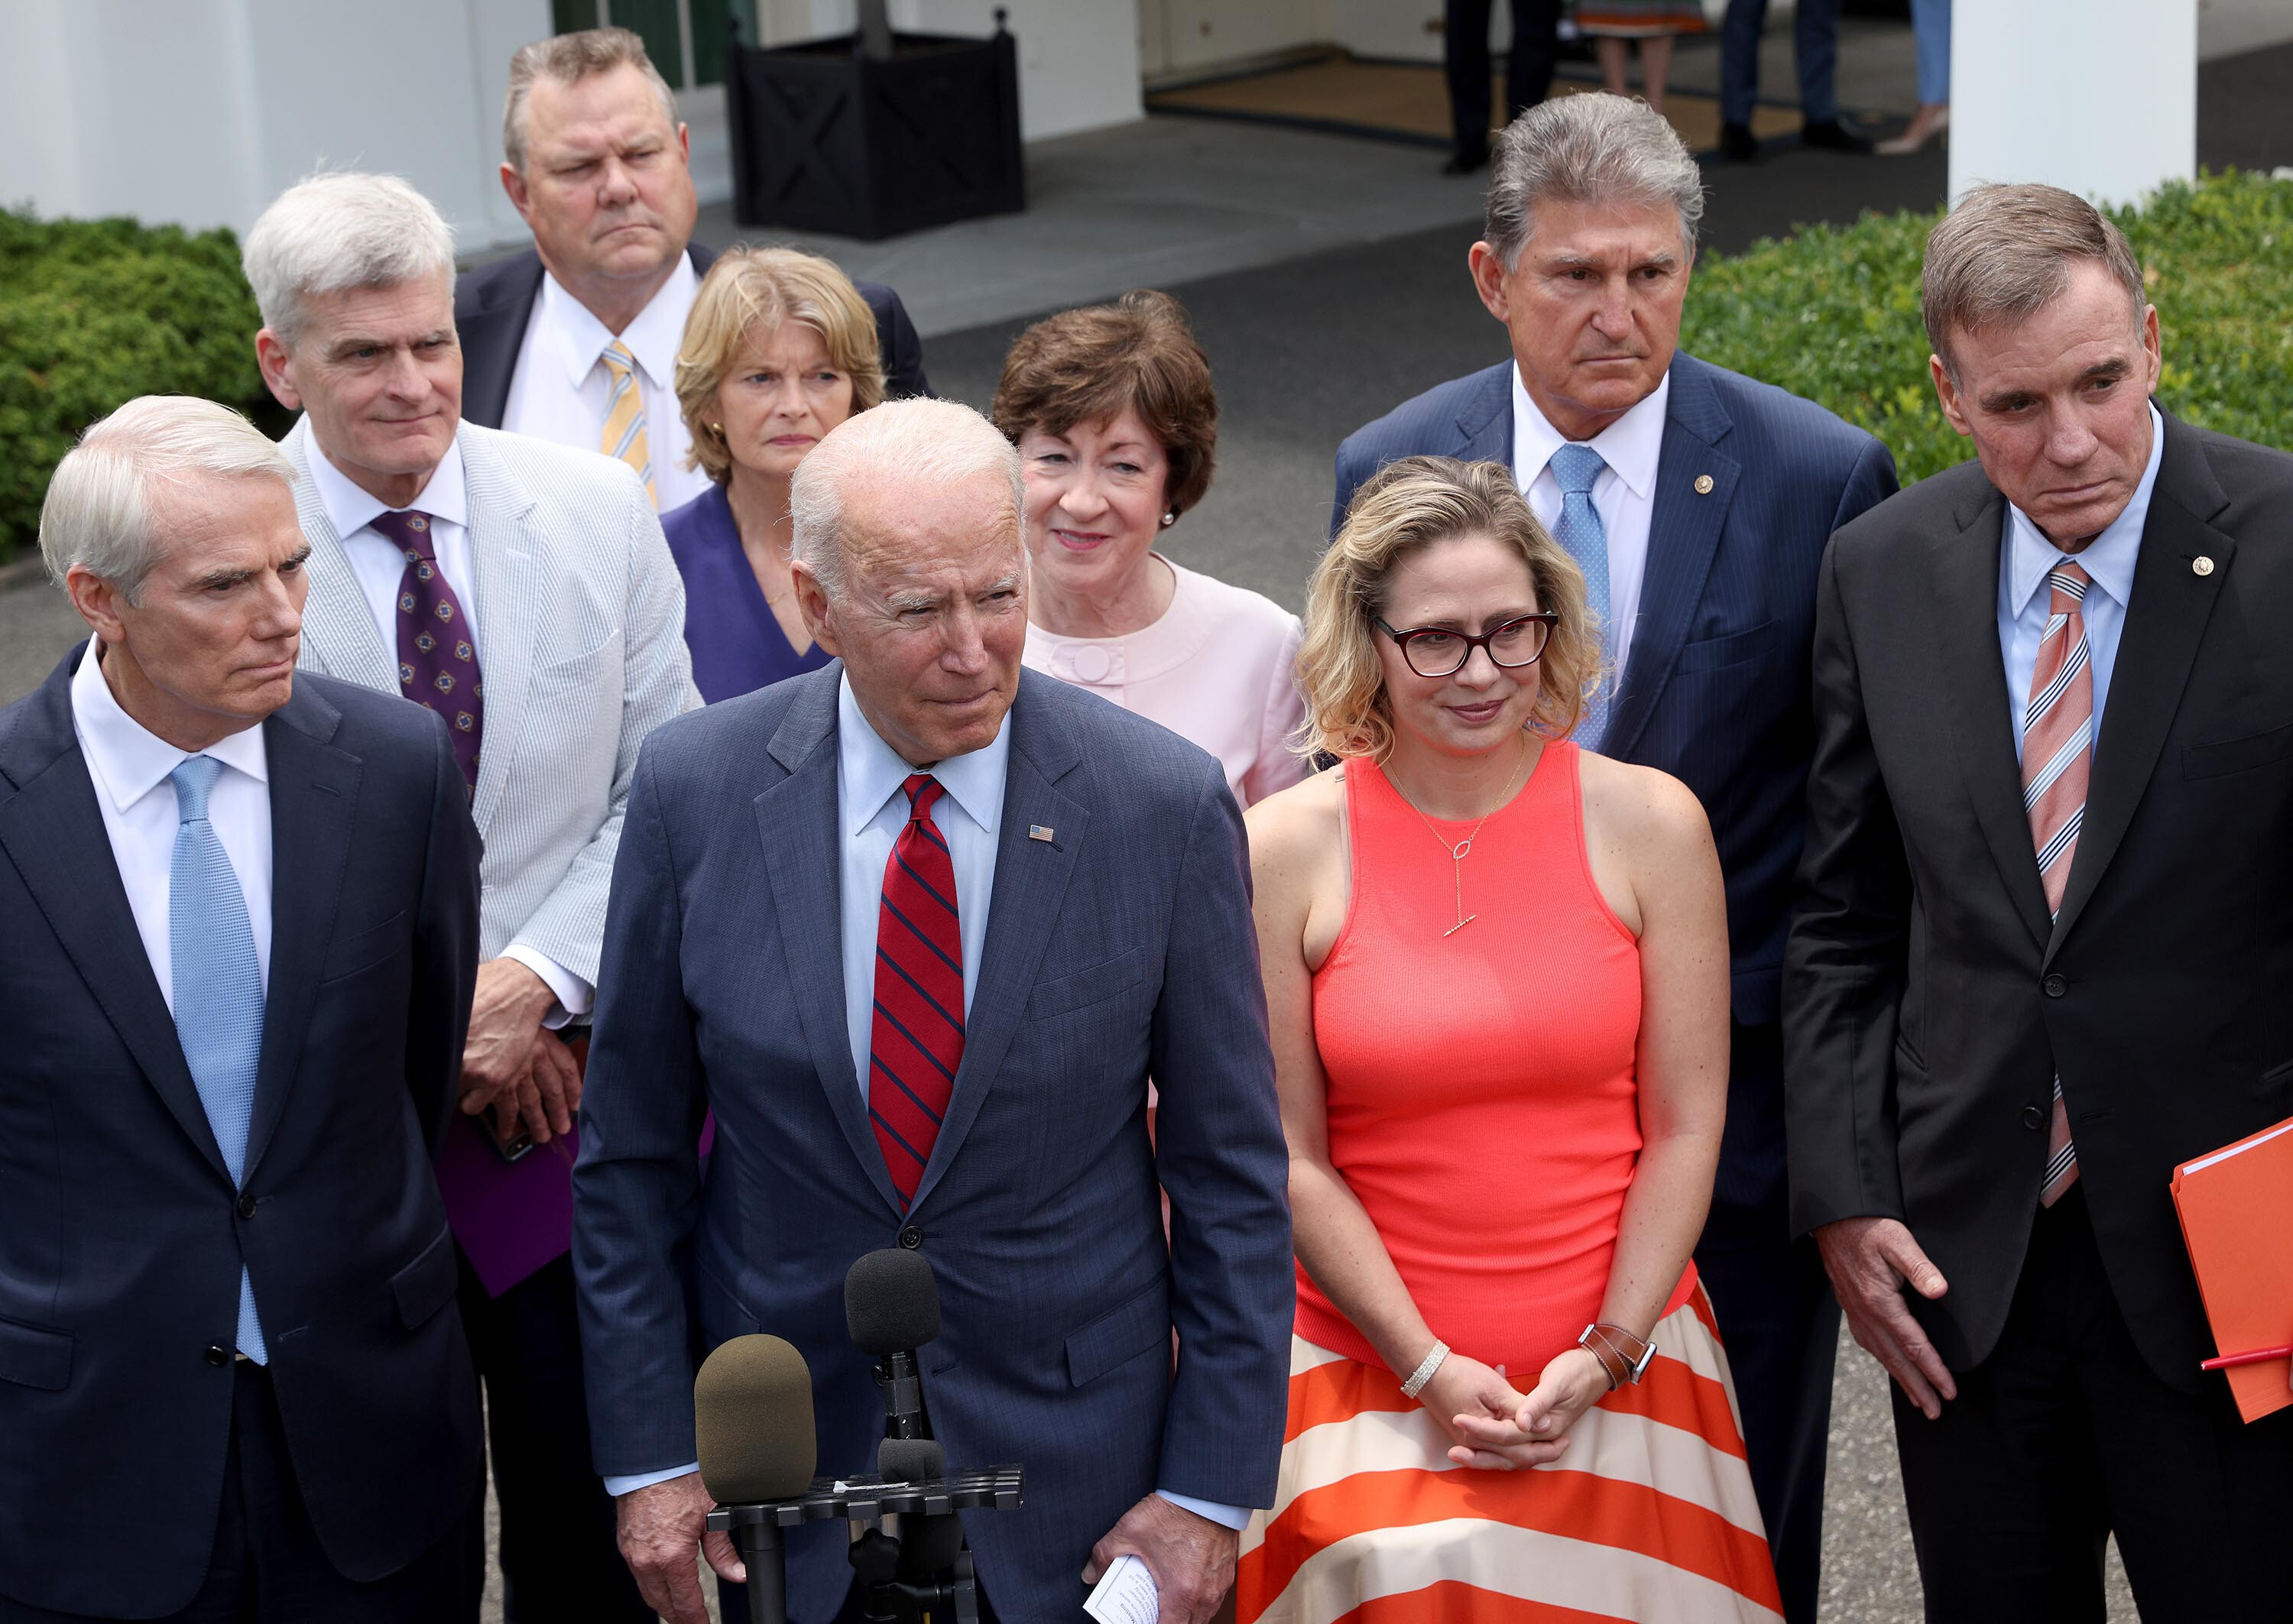 Sinema's opposition to raising the corporate tax rate leaves White House scrambling to pay for Biden's agenda